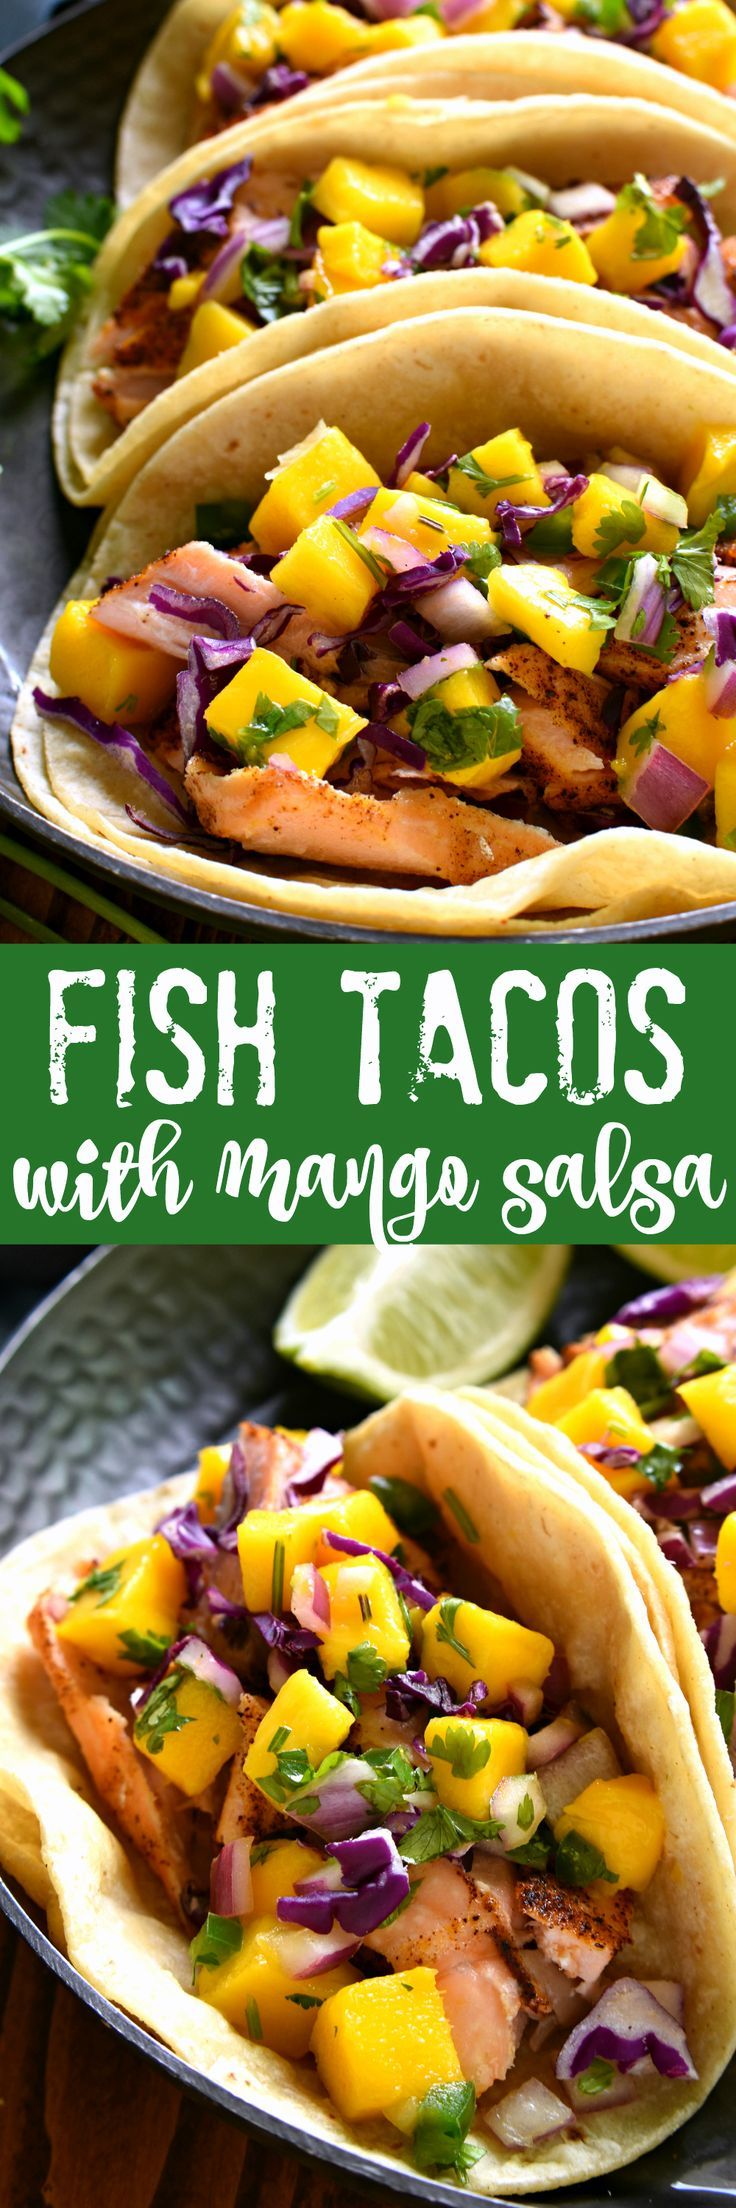 These Fish Tacos combine the deliciousness of salmon with the fun of mango salsa! They're super easy to make and perfect for the warmer months ahead....sure to become a new favorite! @picknsave #mypic (Easy Vegan Tacos)